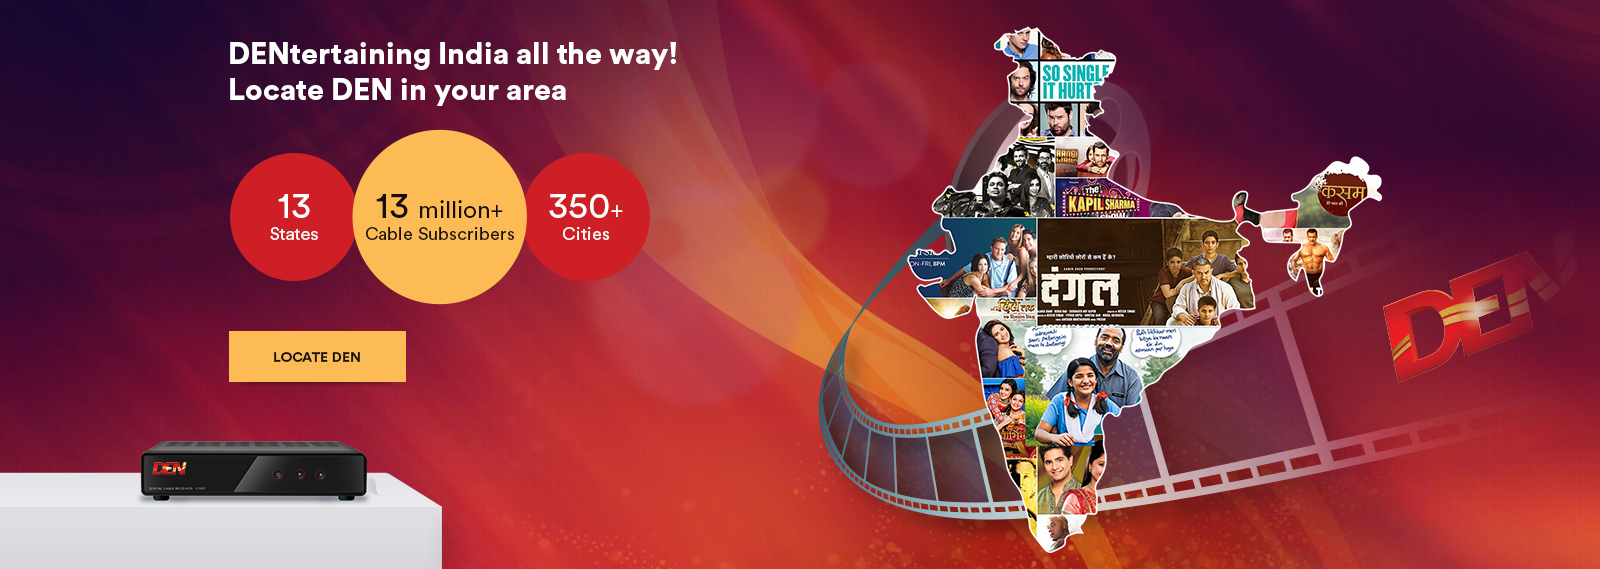 Download DEN TV - Now experience TV on your Mobile - digital cable India